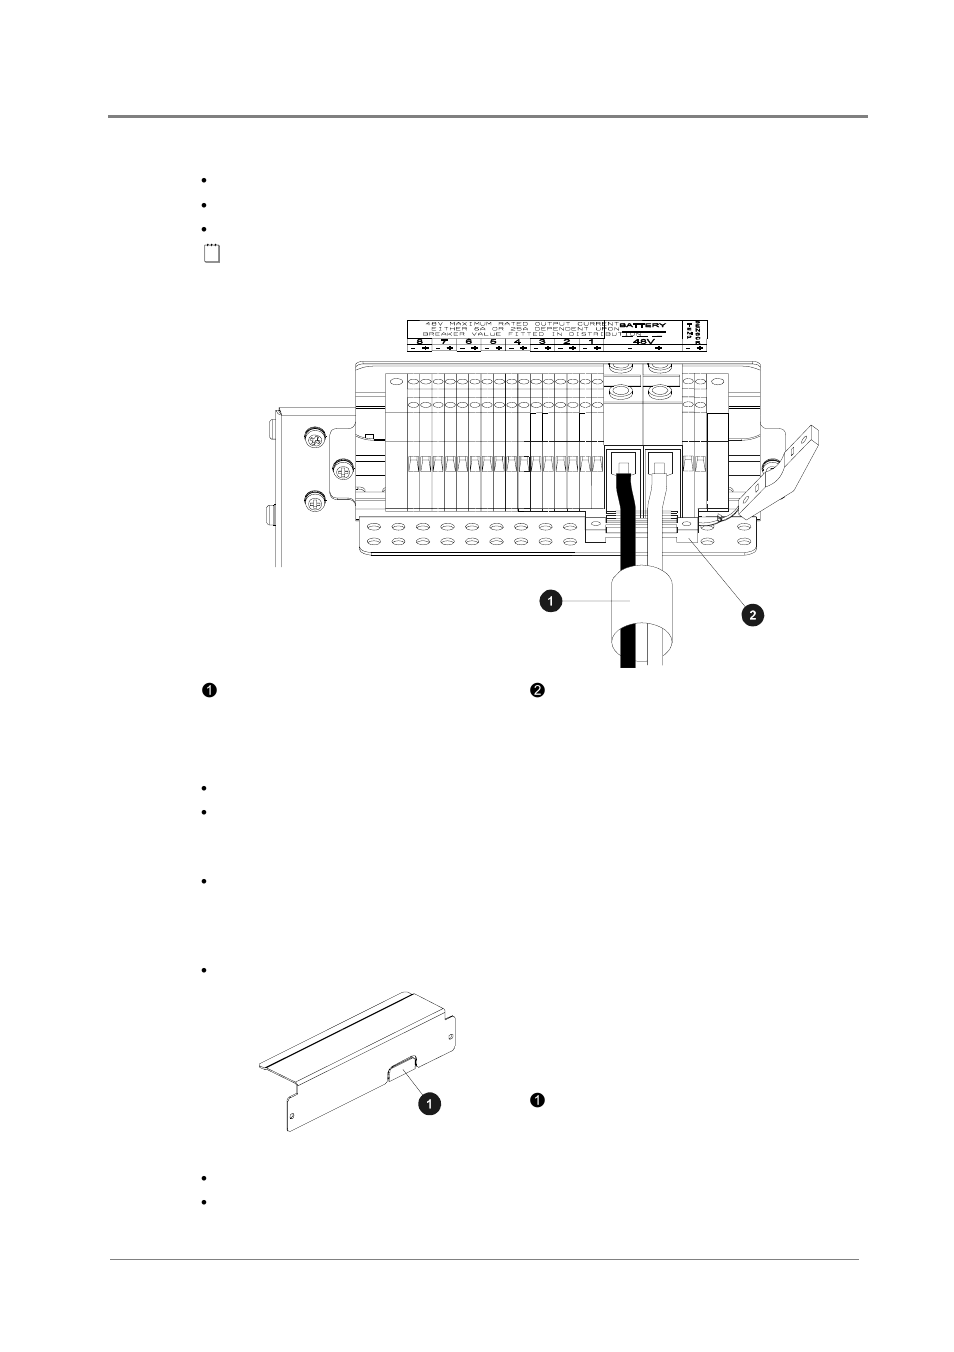 Eaton Electrical APR48 User Manual | Page 23 / 29 | Also for: 10640205